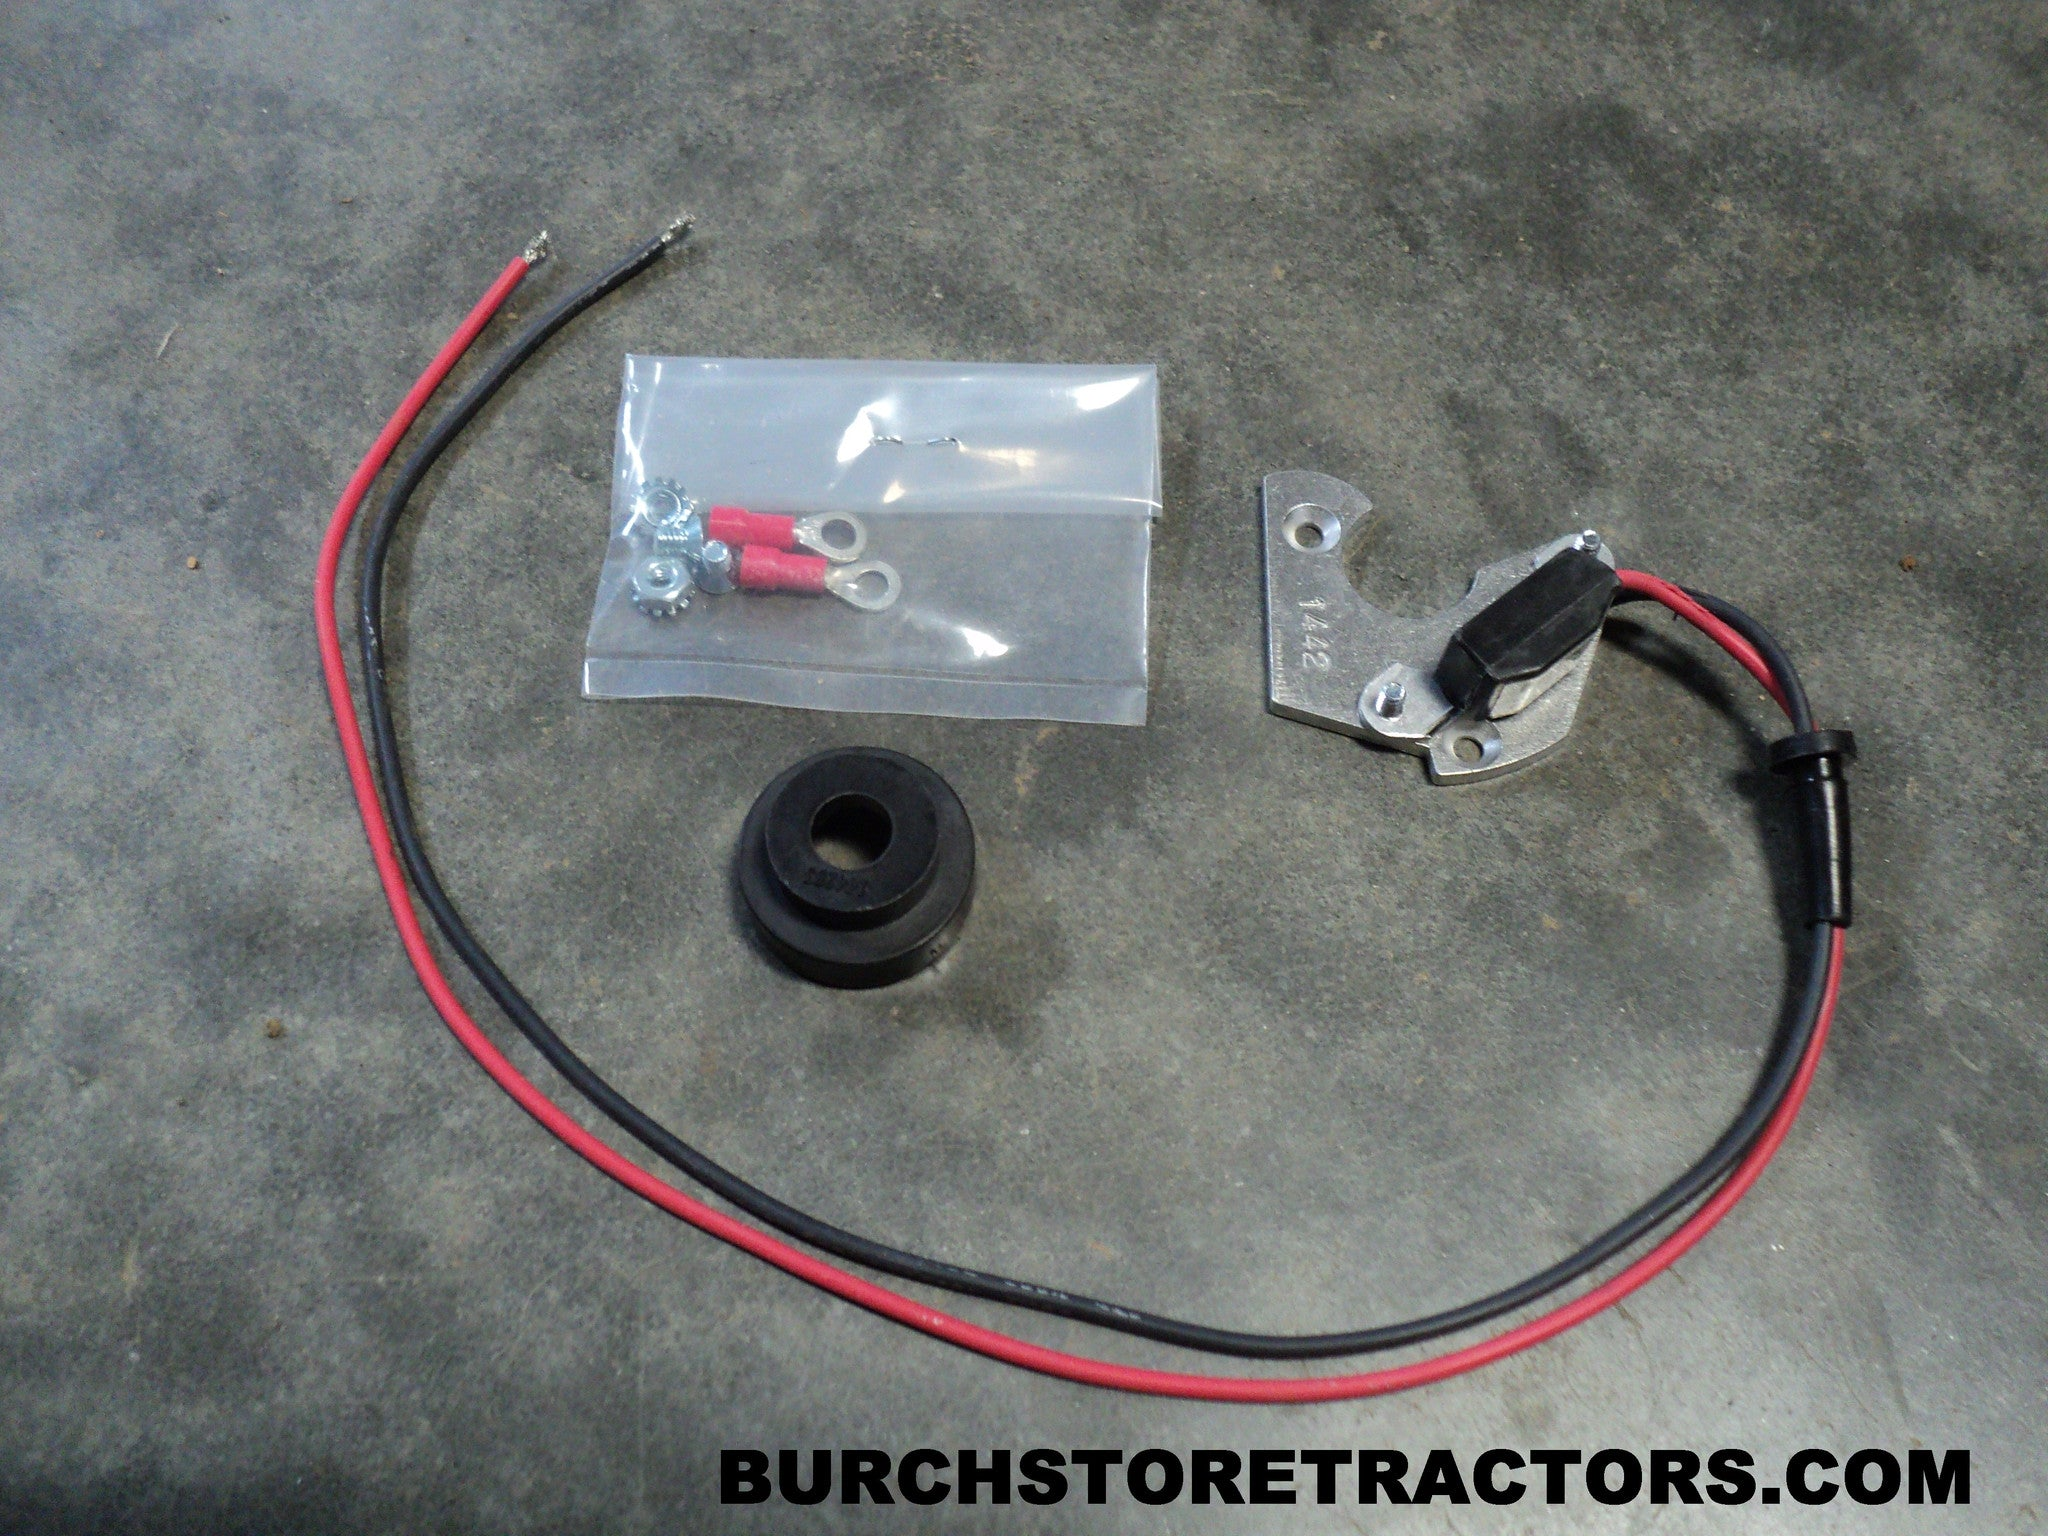 New Electronic Ignition For Farmall 100 130 140 200 230 240 Tractor Electrical Wiring Supe Burch Store Tractors